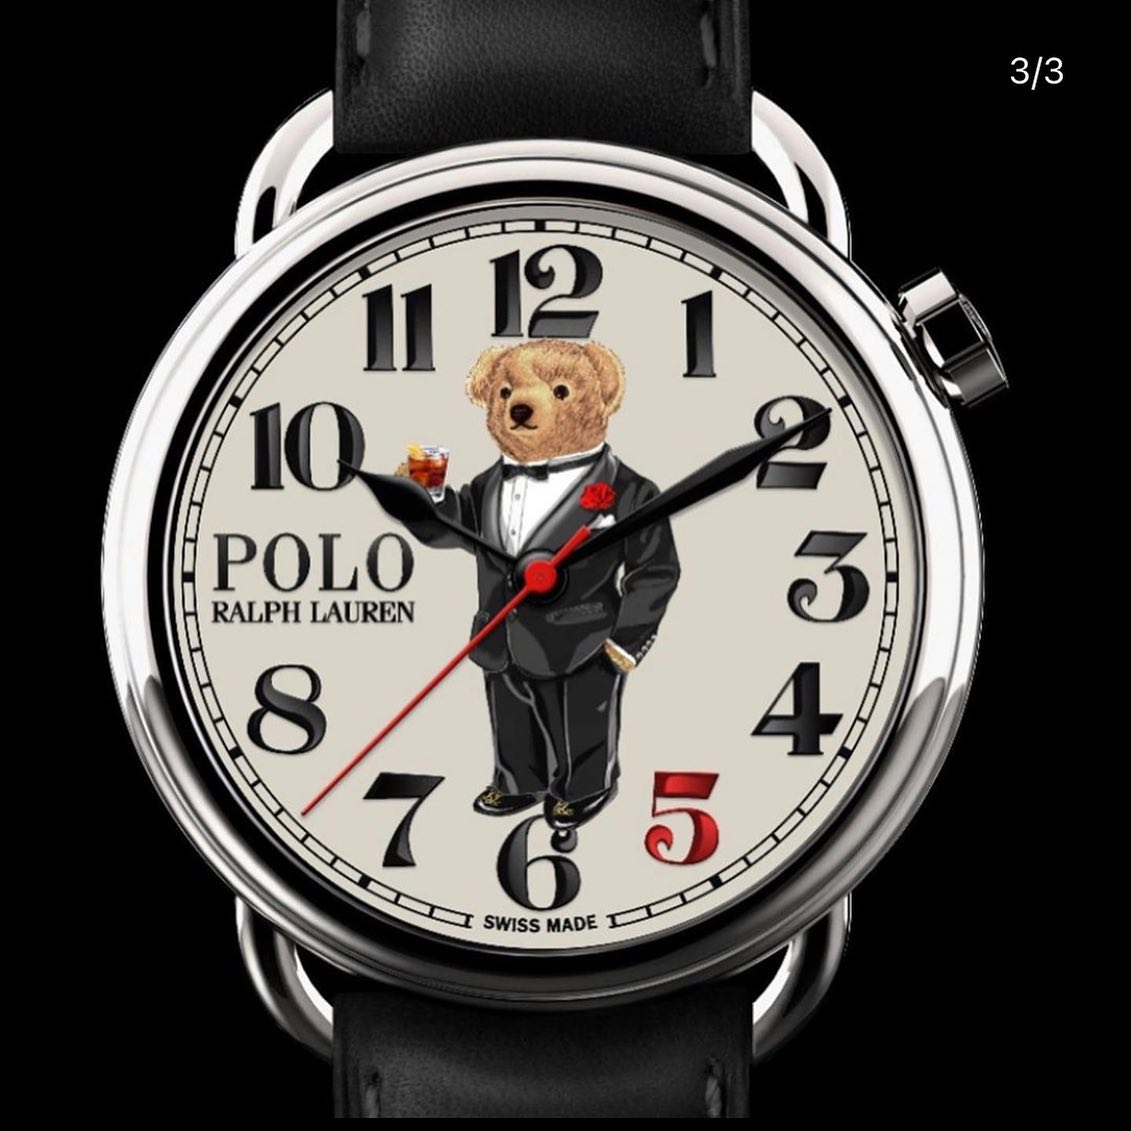 @ralphlauren X @therake - 200 watches only, $1950USD - shut up and take our money! *The bear is drinking a goddamn negroni* Too much. ️